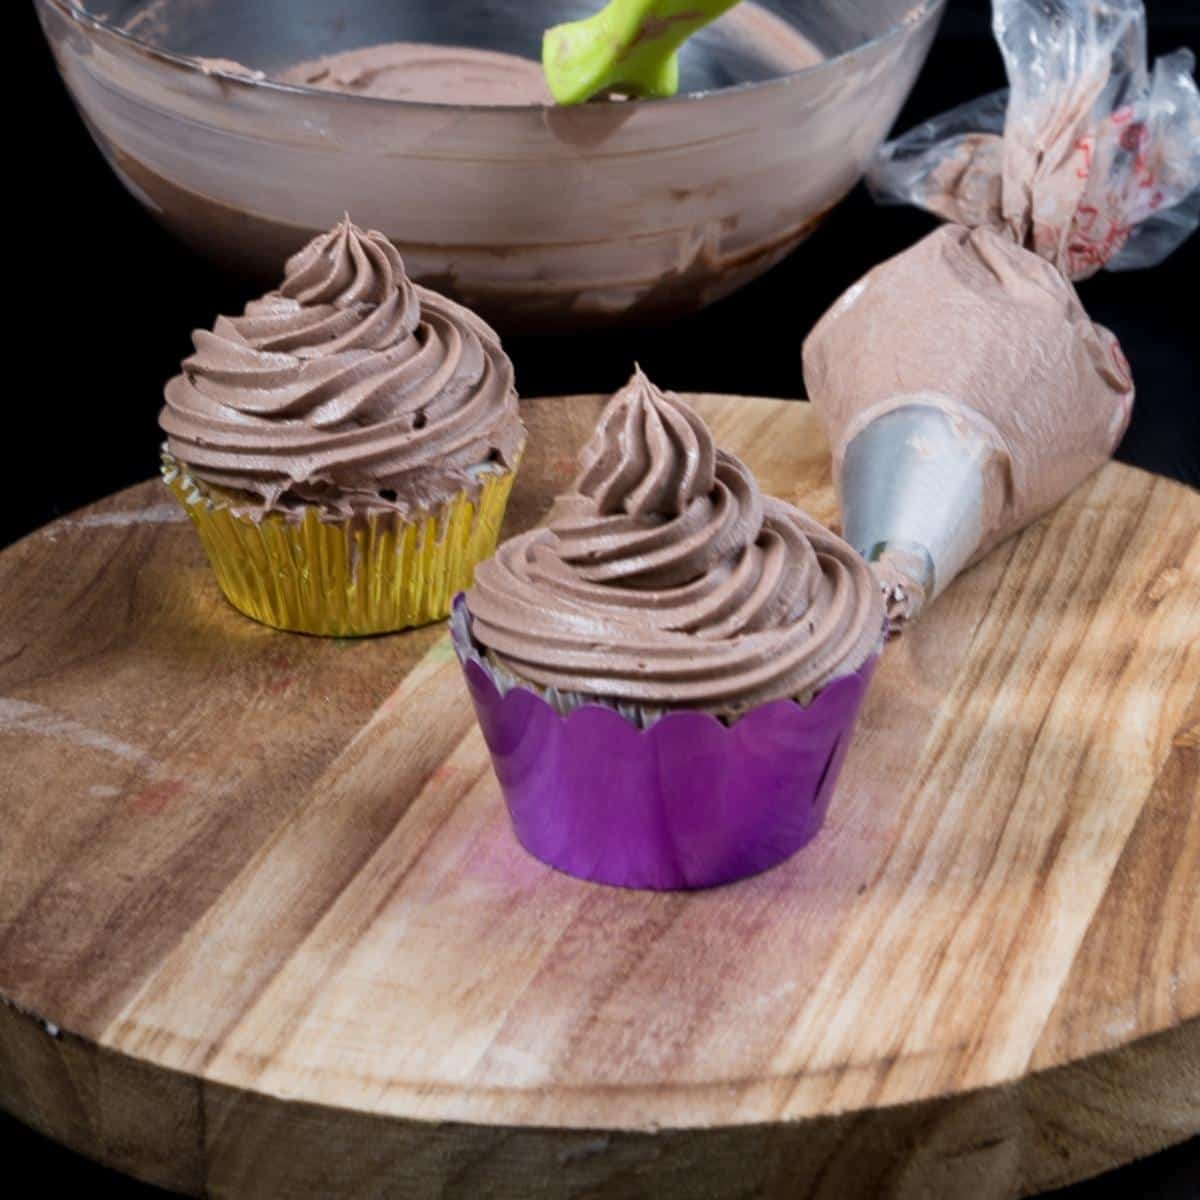 A frosted chocolate cupcakes.